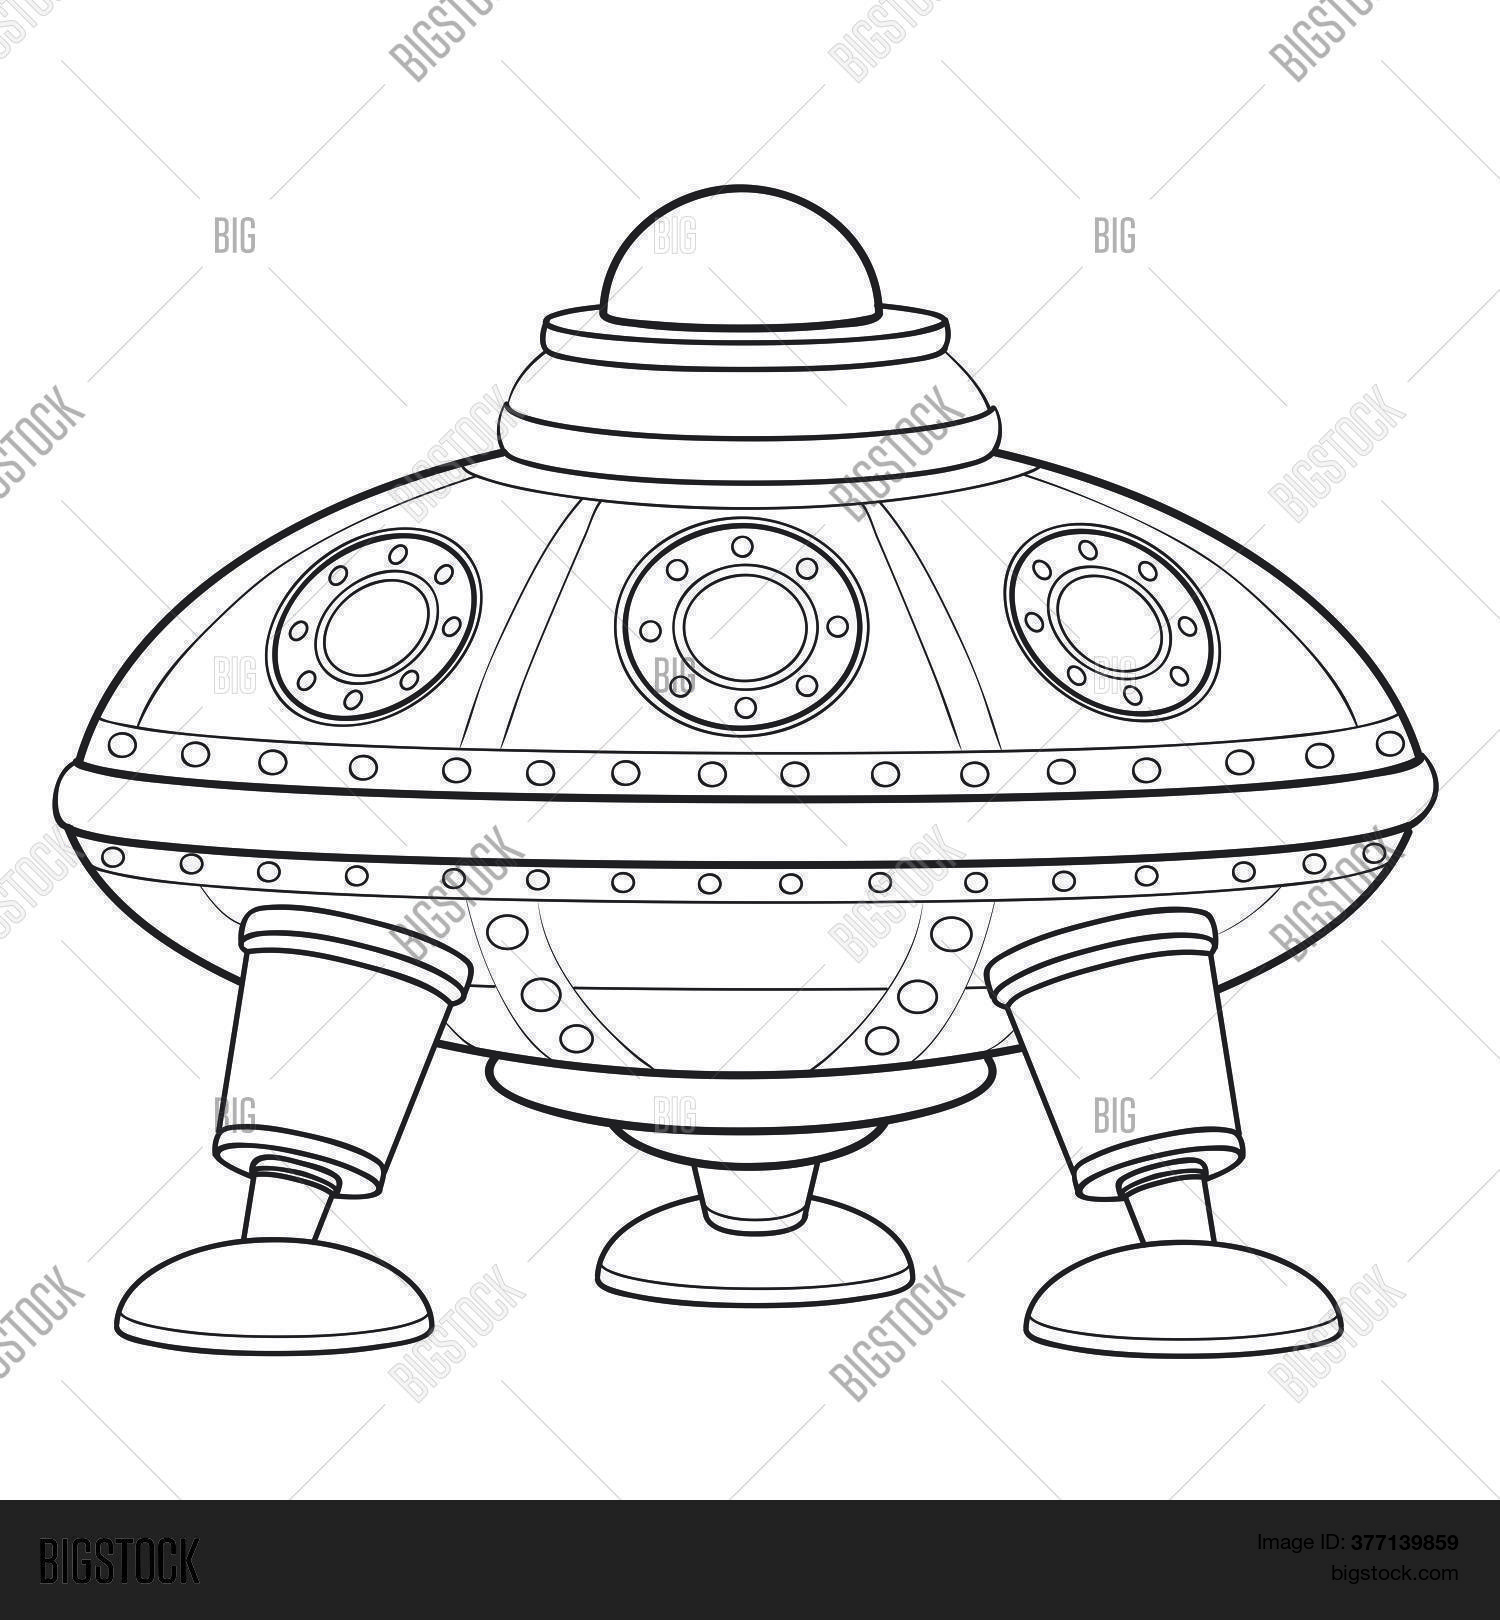 Flying Saucer Sketch Vector Photo Free Trial Bigstock